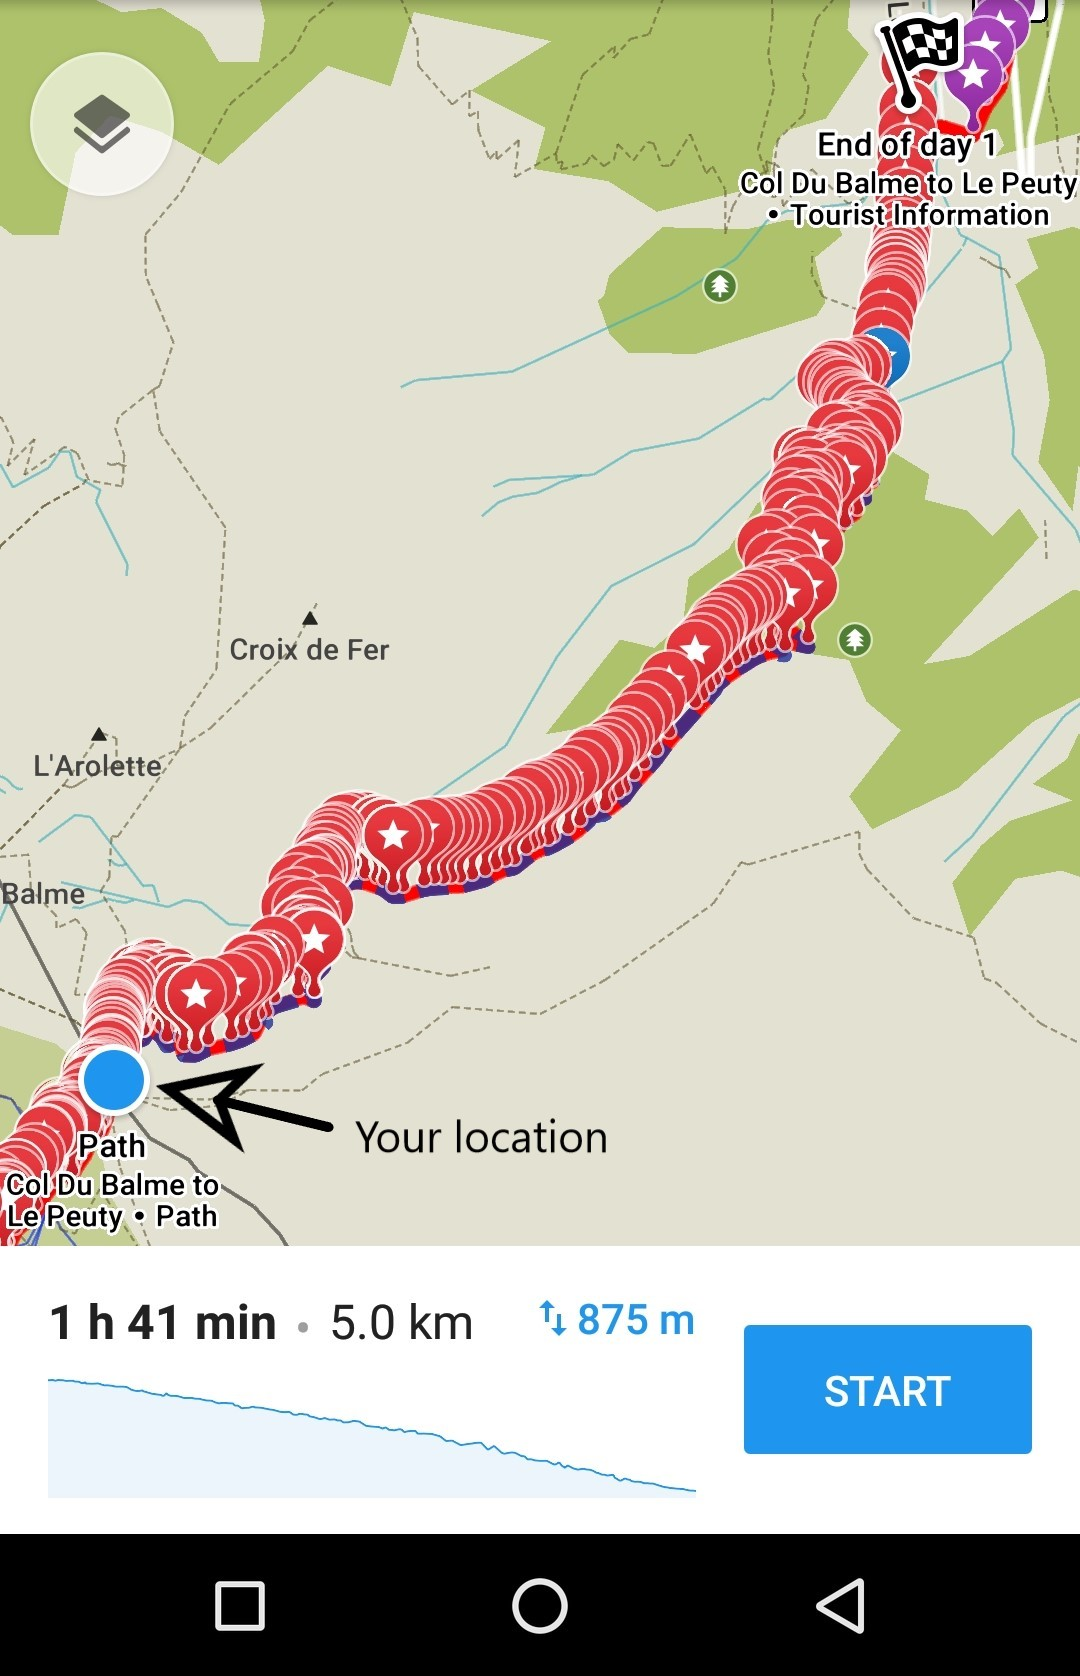 The Haute Route maps with GPS coordinates